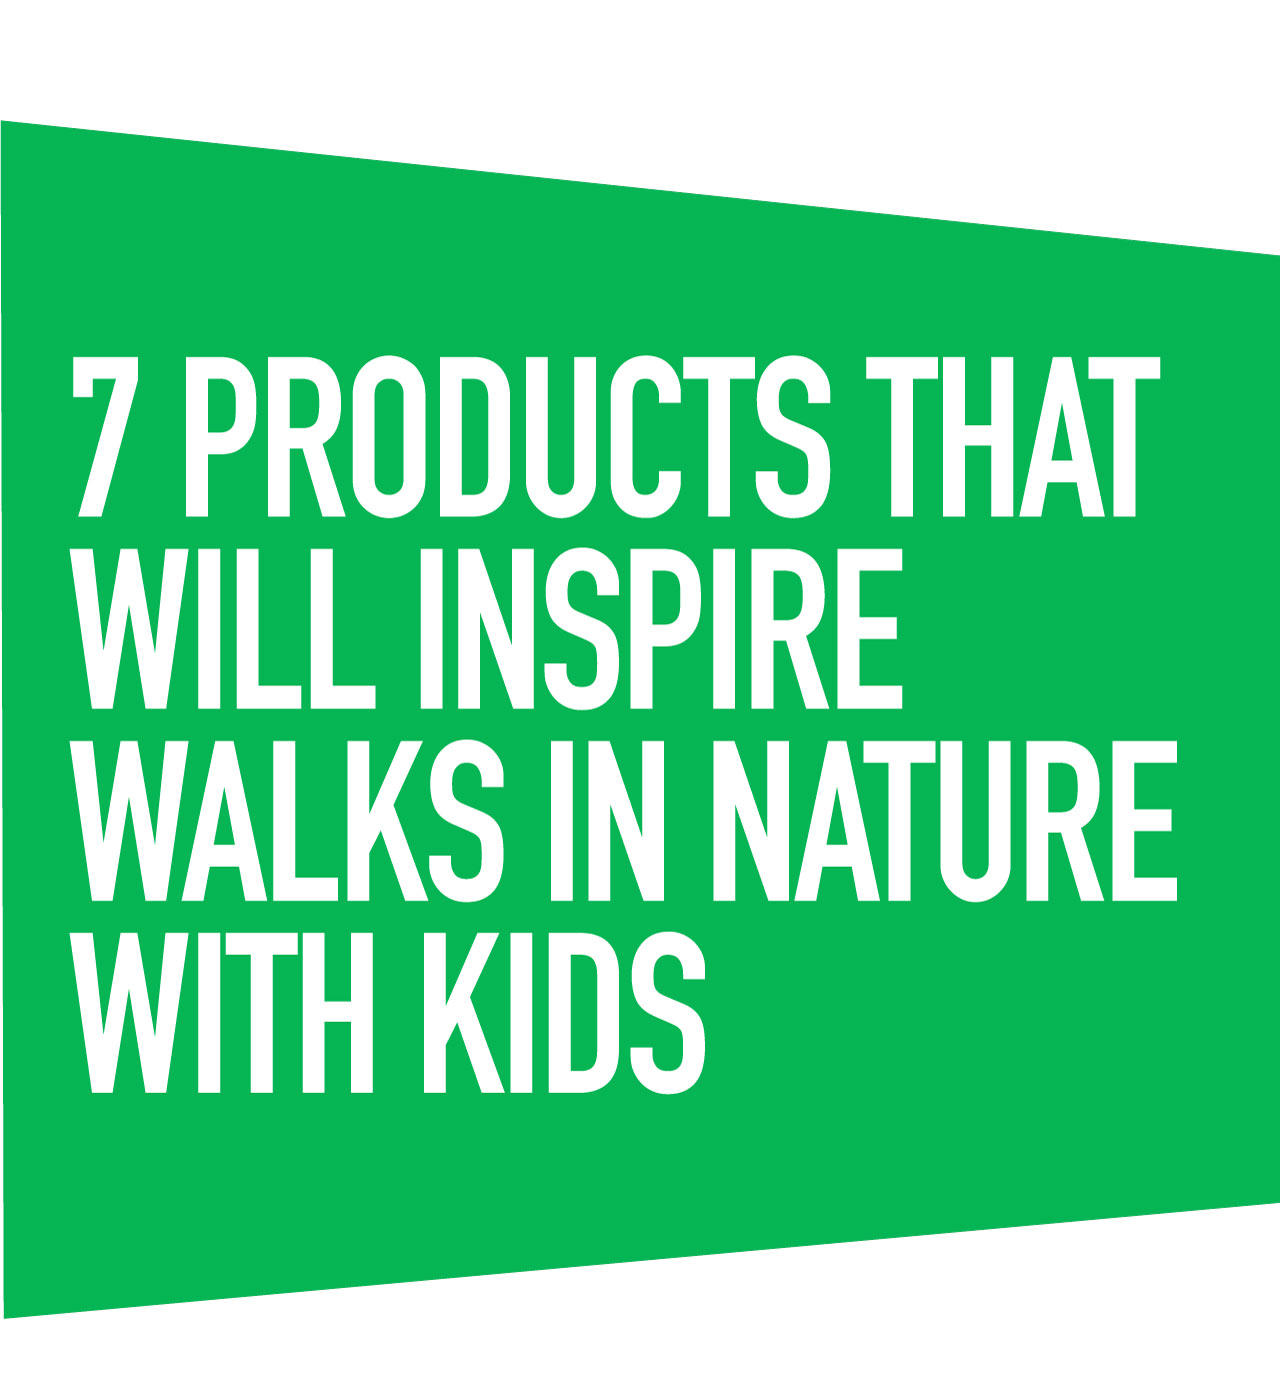 7 Products That Will Inspire Walks in Nature With Kids